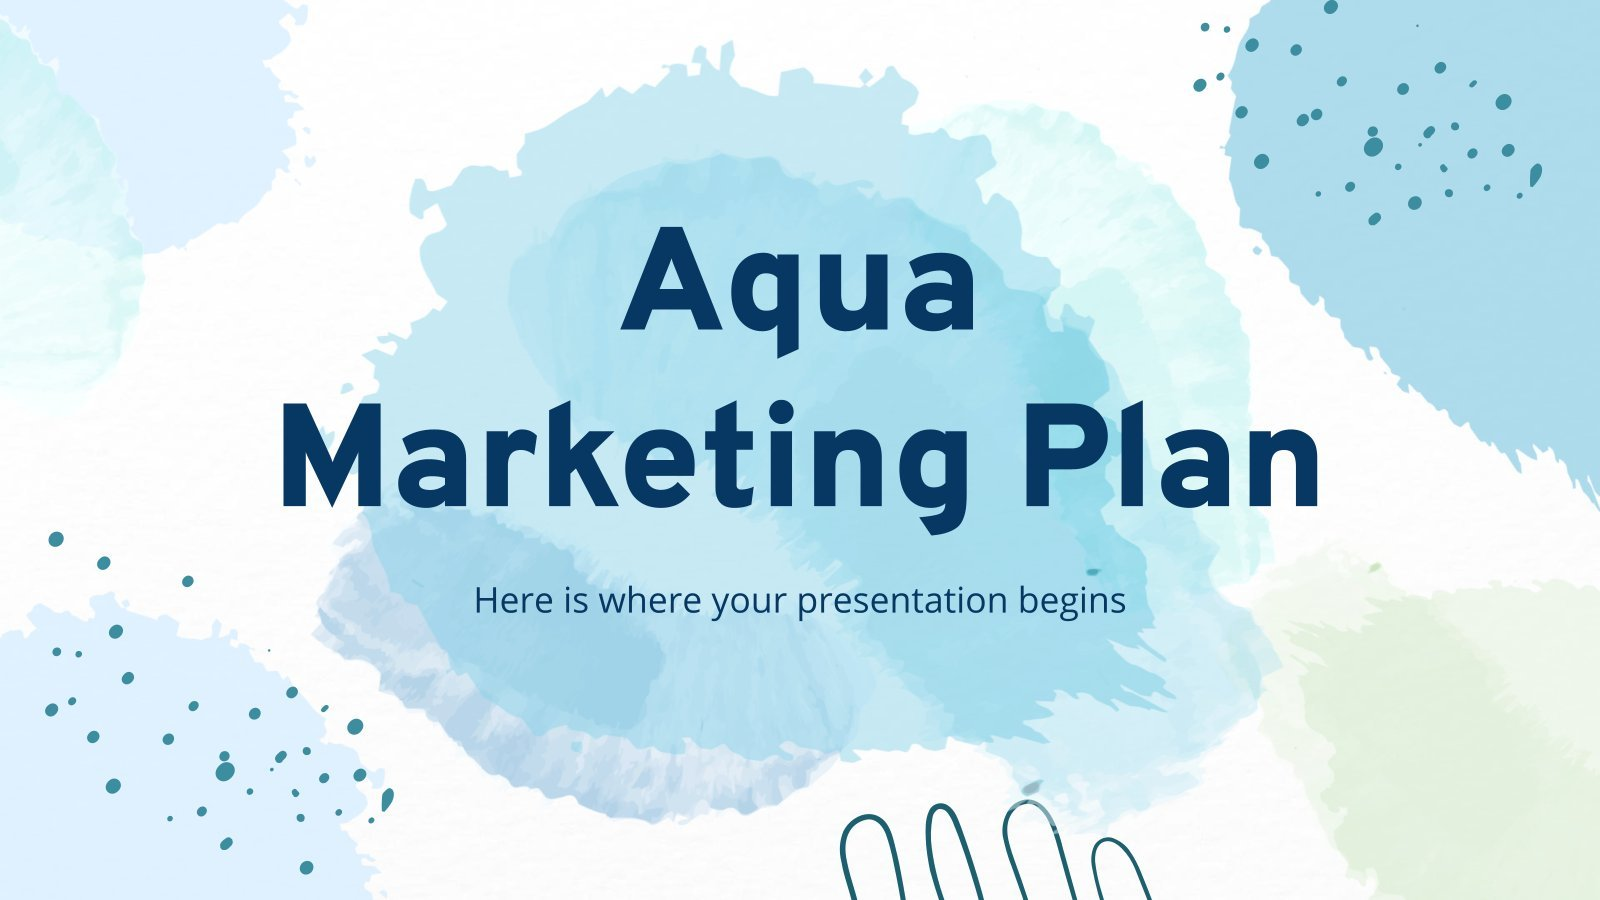 Plantilla de presentación Plan de marketing Aqua